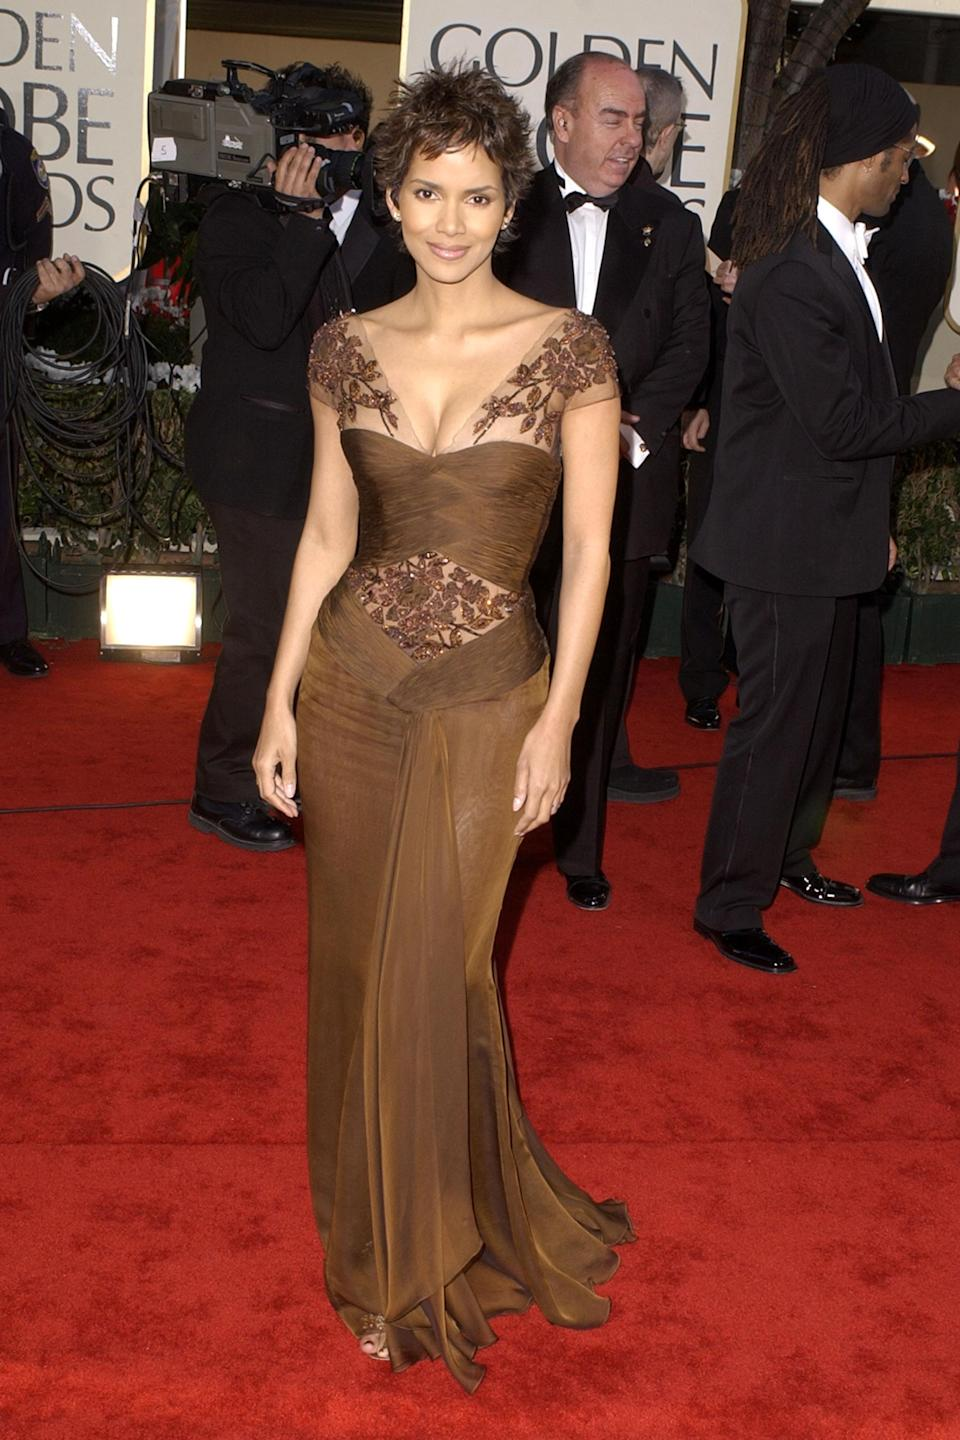 """<strong><h2>2002</h2></strong><br>Only Halle Berry could pull off arguably the hardest color on the red carpet: chocolate brown. Then again, we're still looking for something Halle Berry <em>doesn't</em> look perfect in.<br><br><em>Halle Berry in Valentino.</em><span class=""""copyright"""">Photo: SGranitz/WireImage.</span>"""